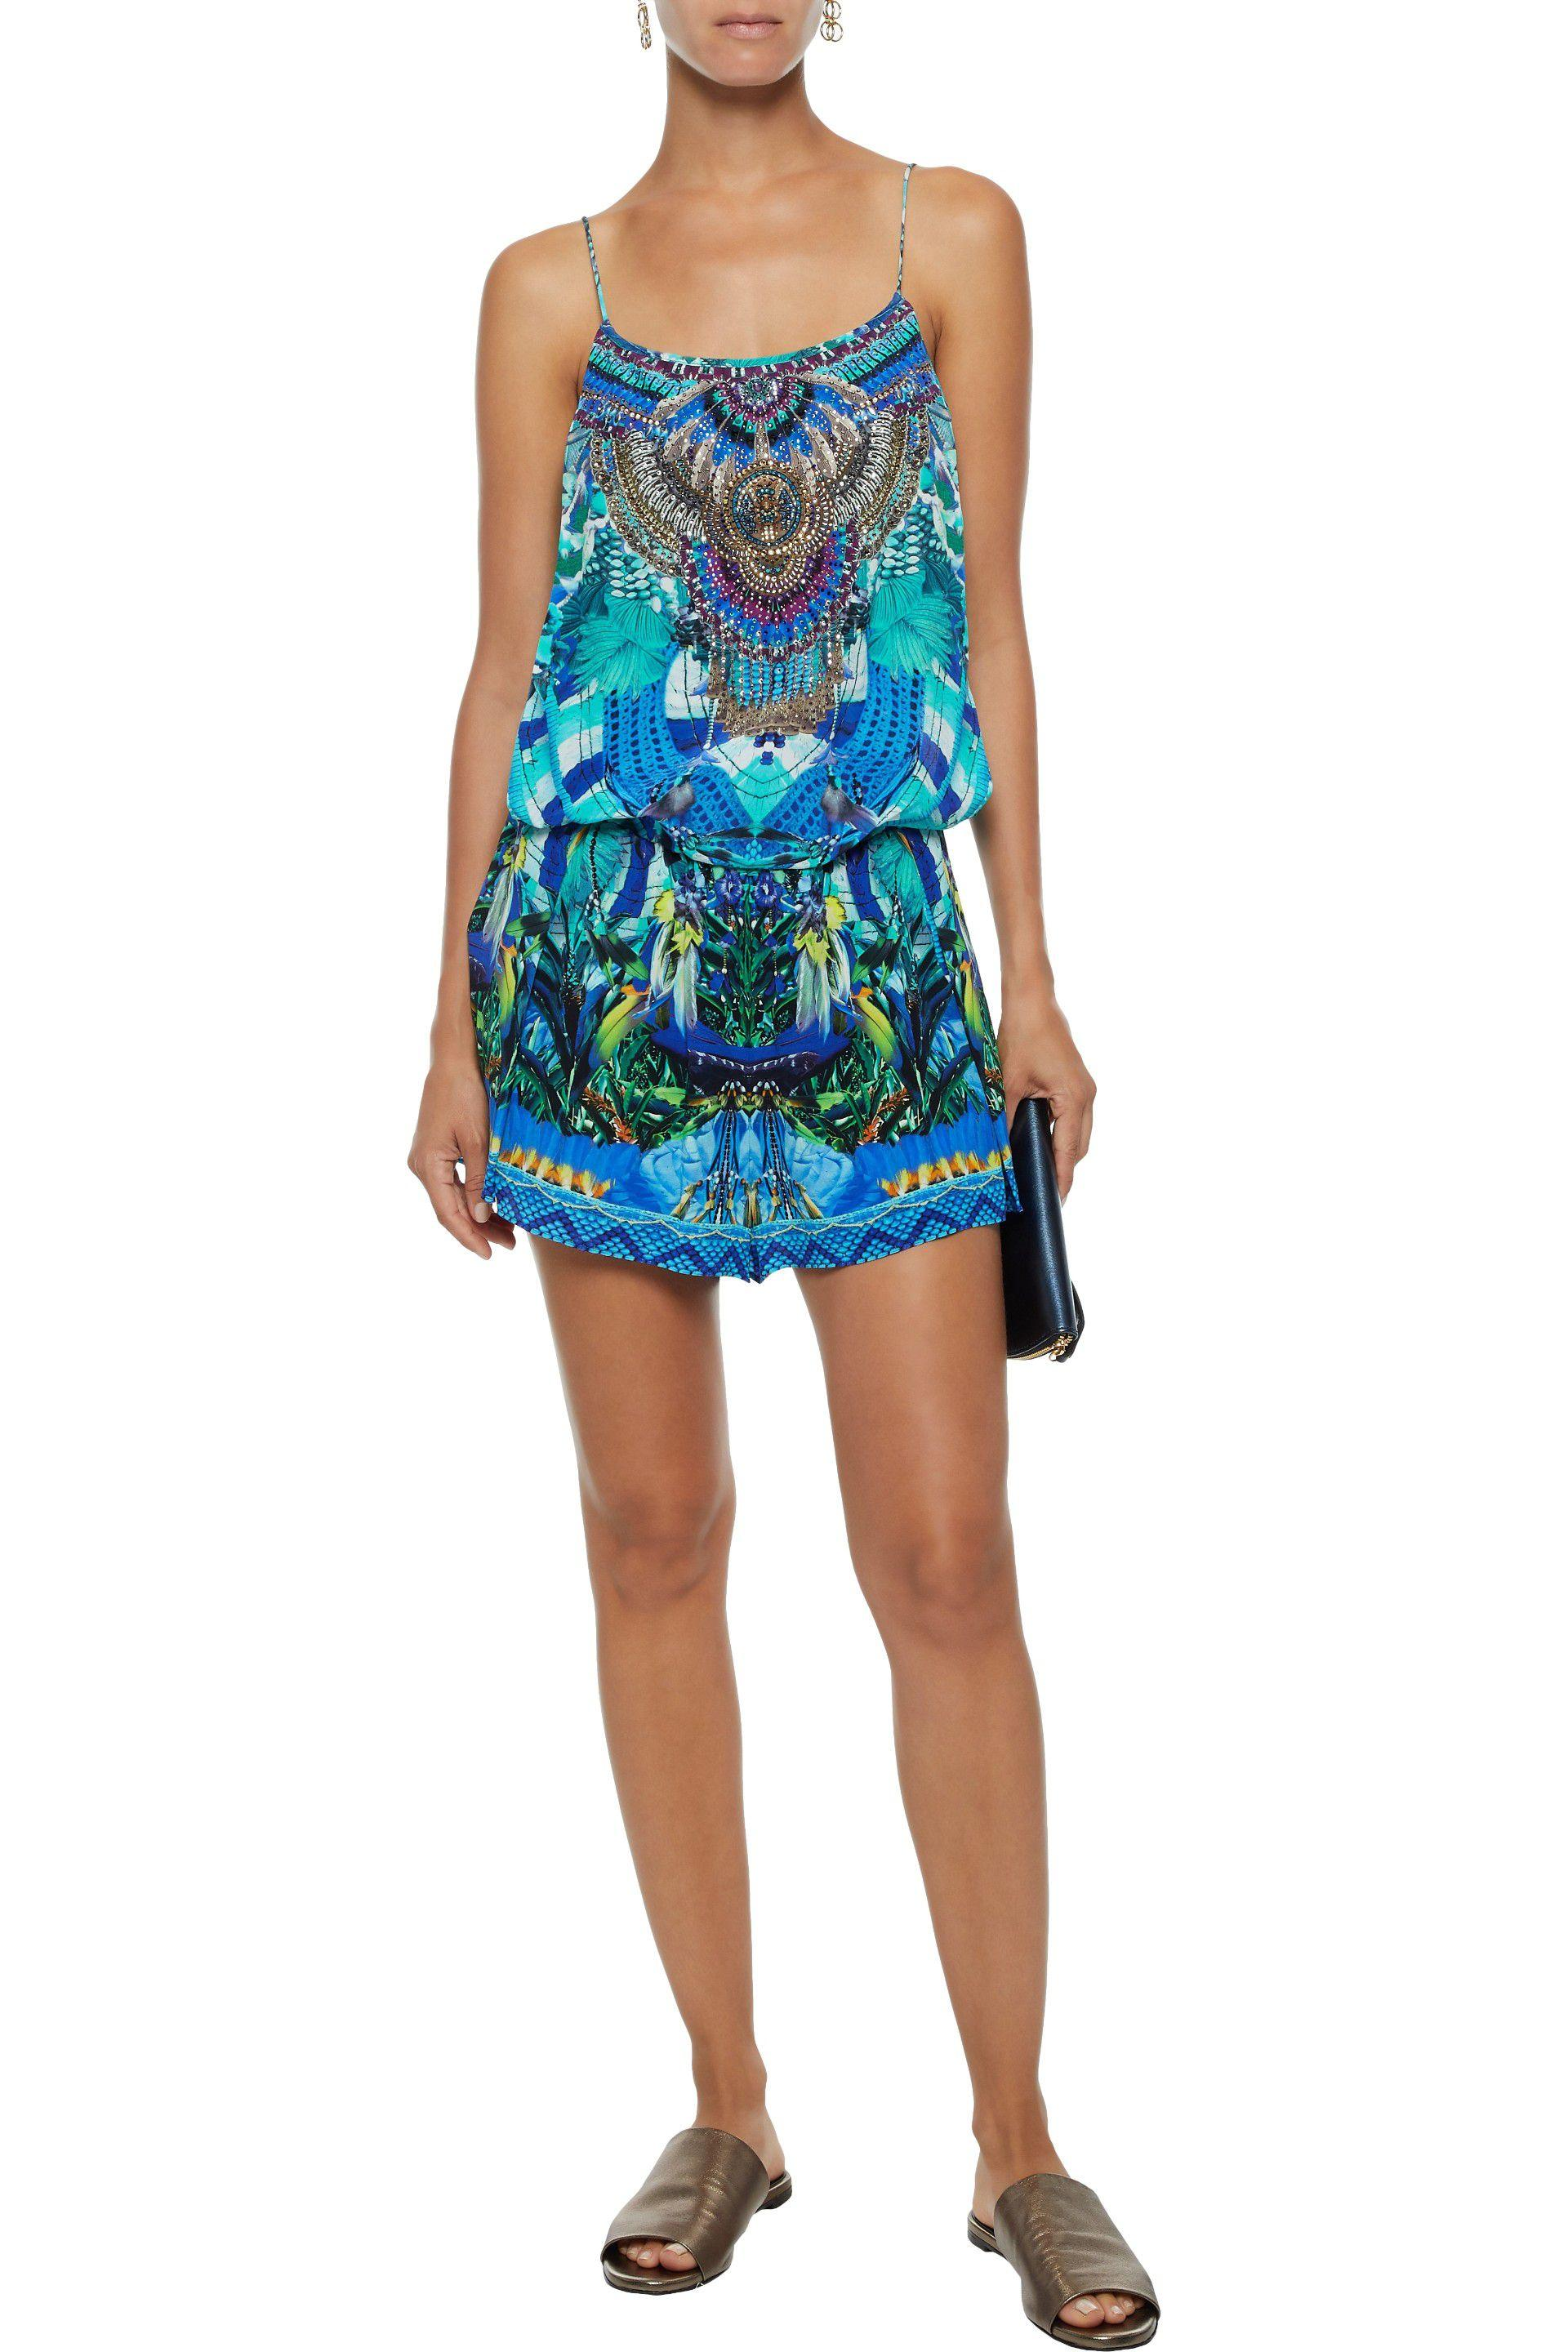 8874cd16de0 Camilla - Blue Woman Masking Madness Embellished Printed Silk Playsuit  Turquoise - Lyst. View fullscreen